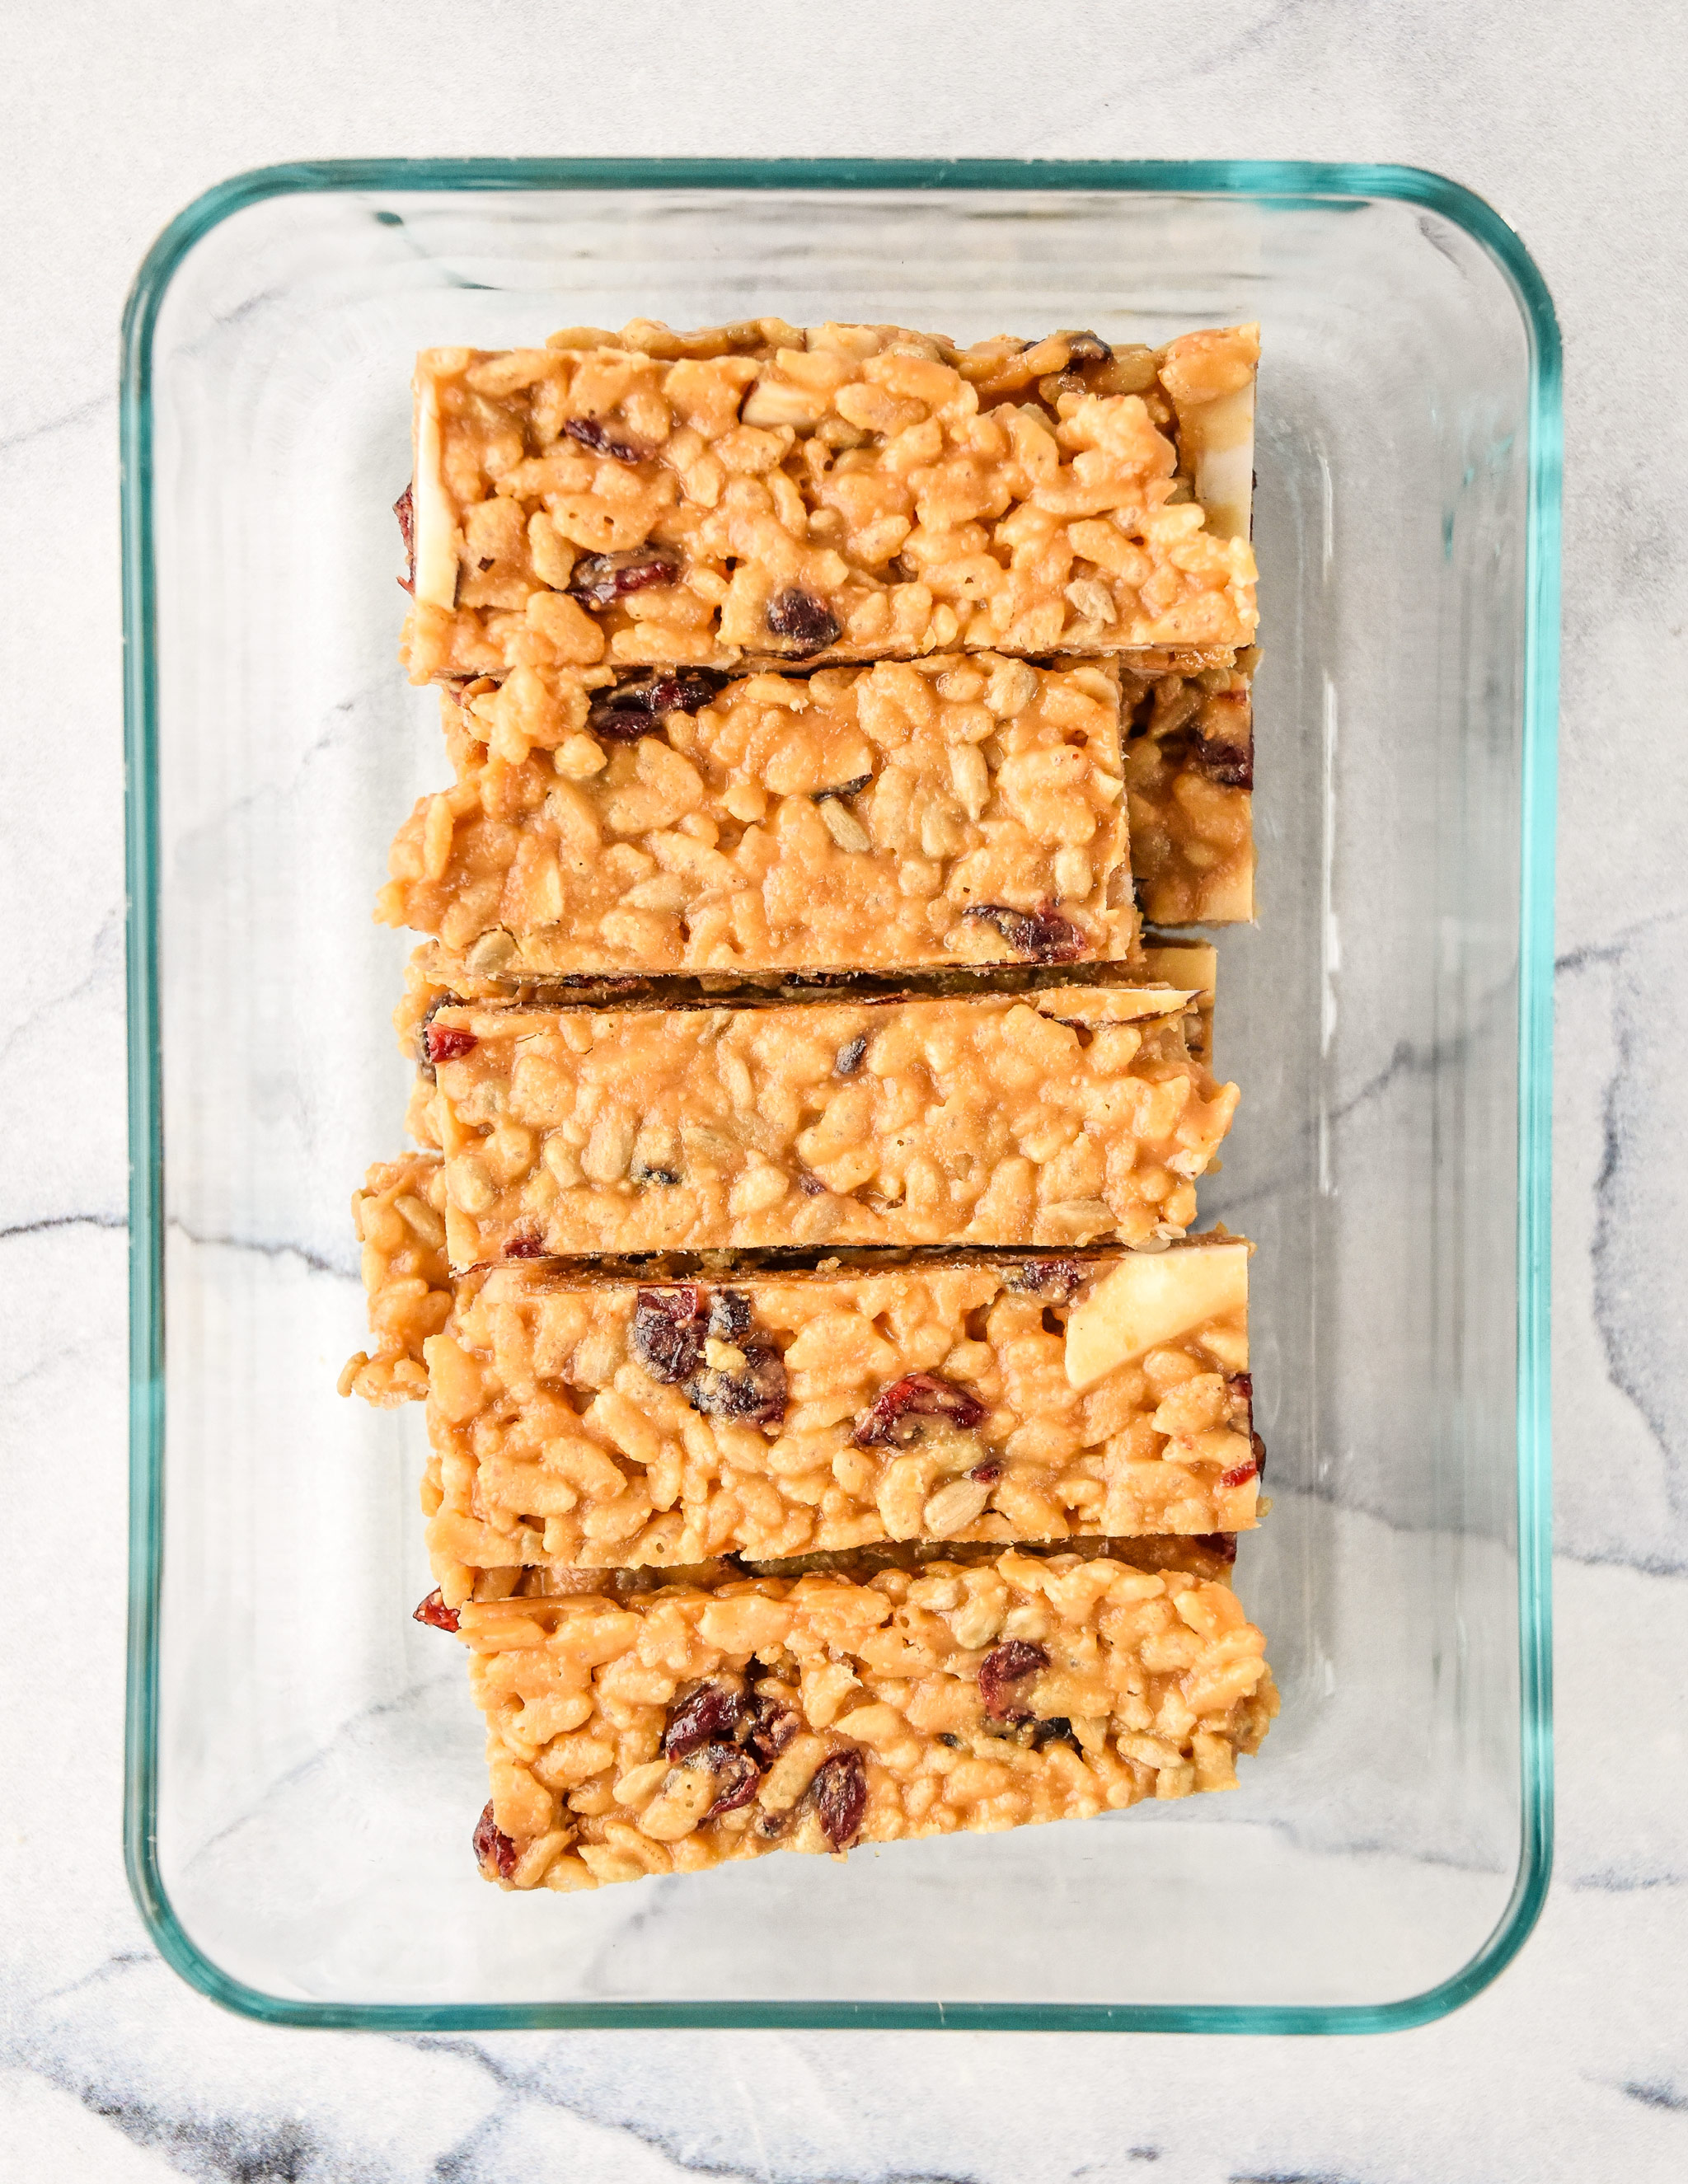 peanut butter rice krispie breakfast bars in a meal prep container